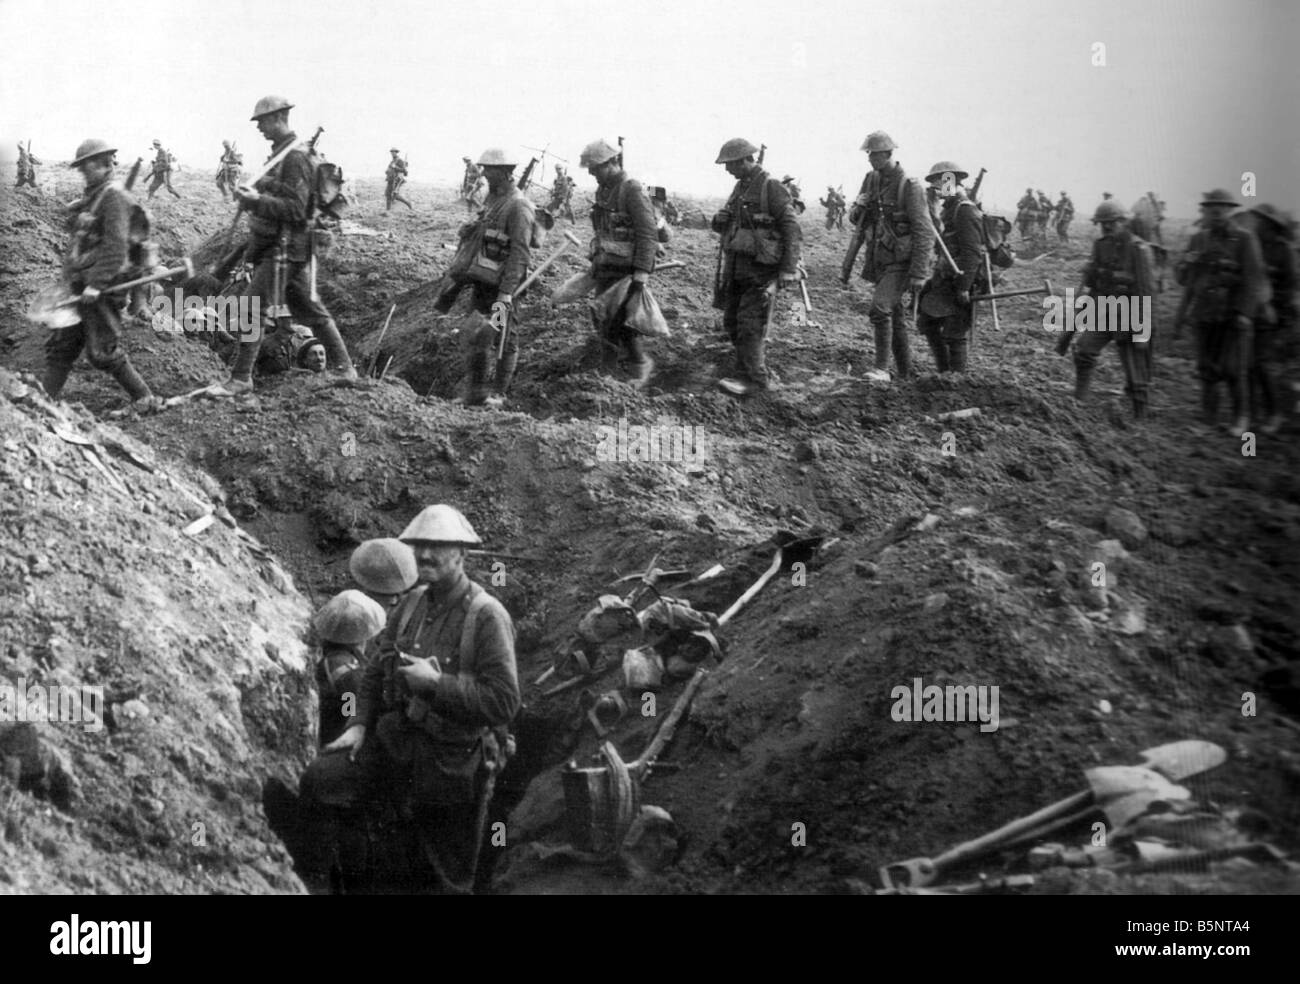 did world war i benefit the The united states declared war on germany on april 6, 1917, during world war i the us was an independent power and did not officially join the allies.